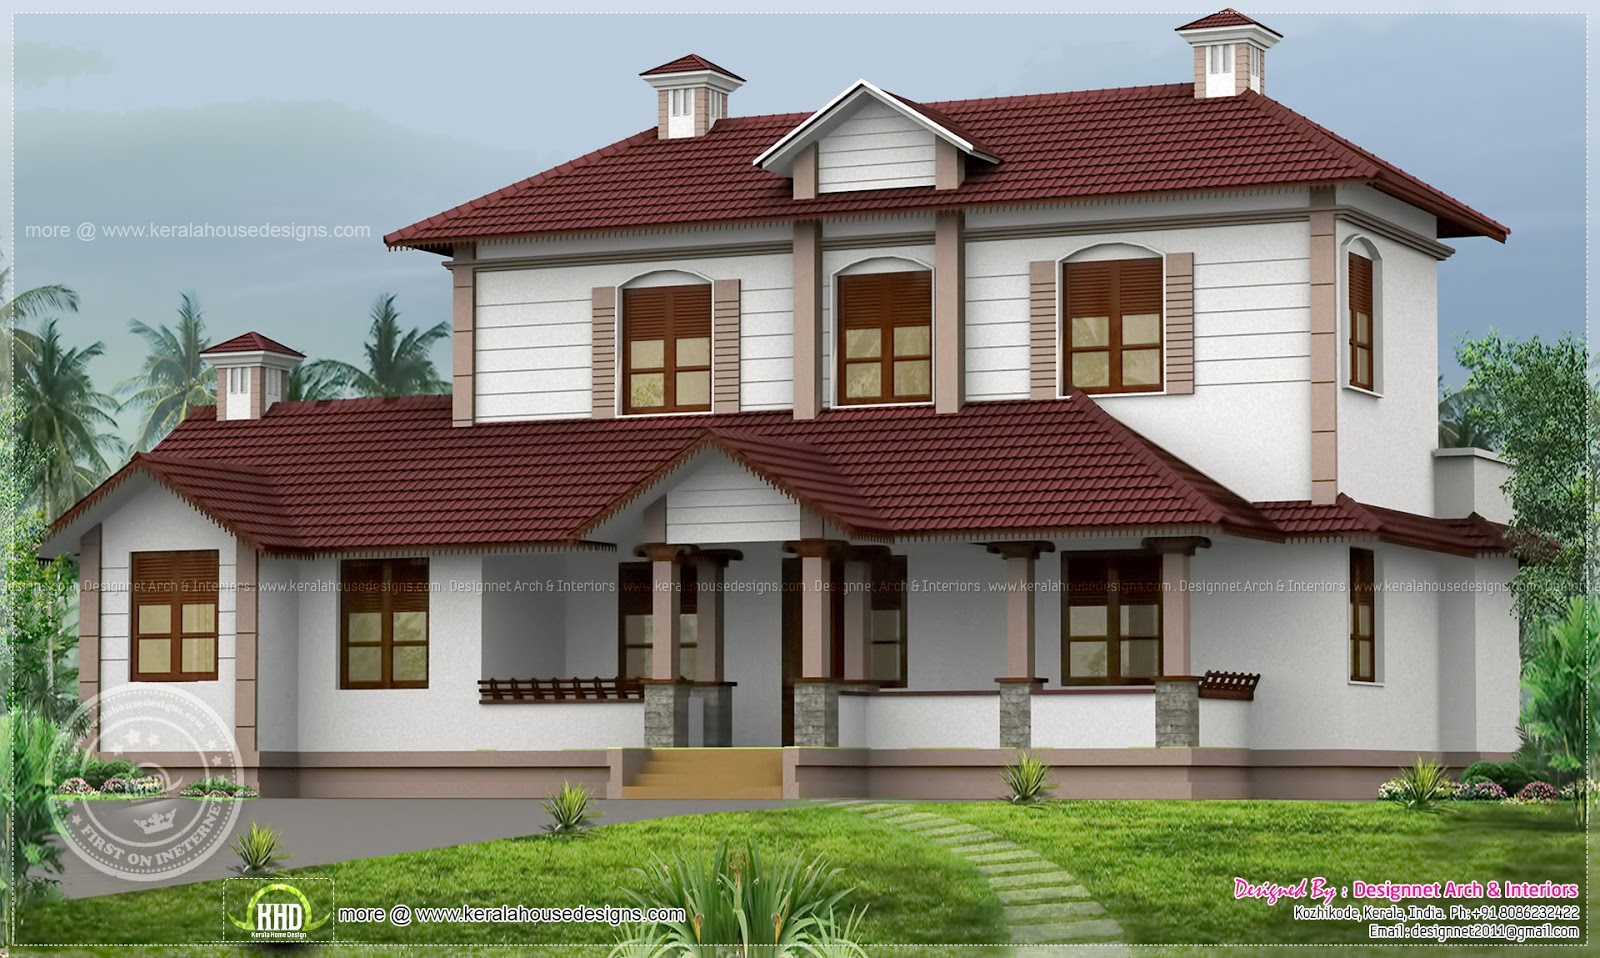 Renovation model of an old house kerala home design and for House of home